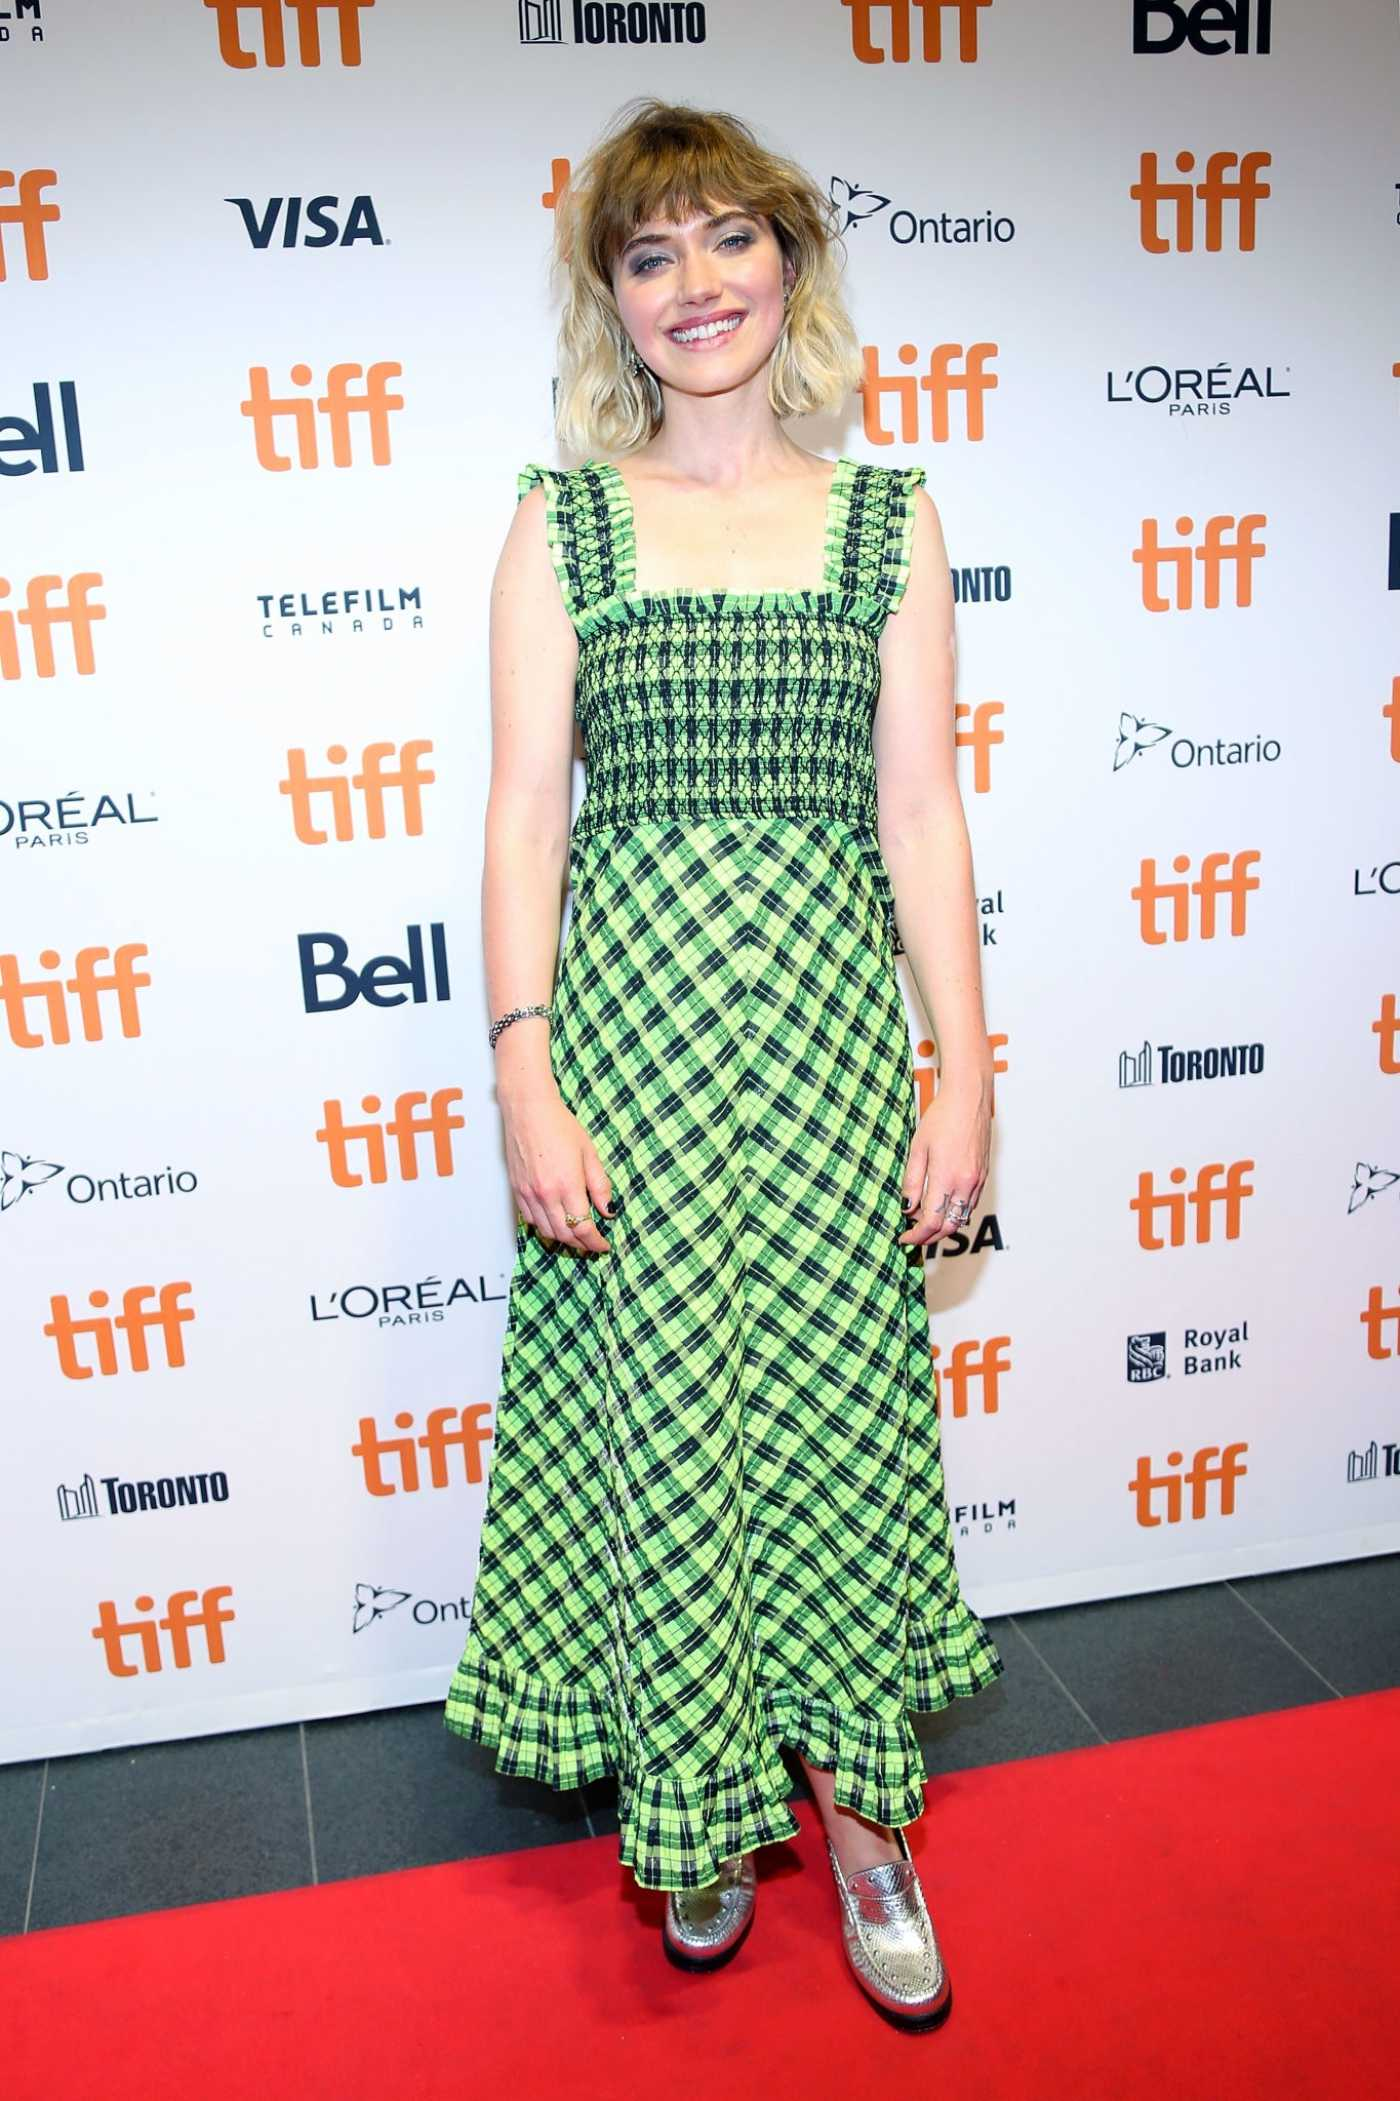 Imogen Poots Attends the Castle In The Ground Premiere During 2019 Toronto International Film Festival in Toronto 09/05/2019